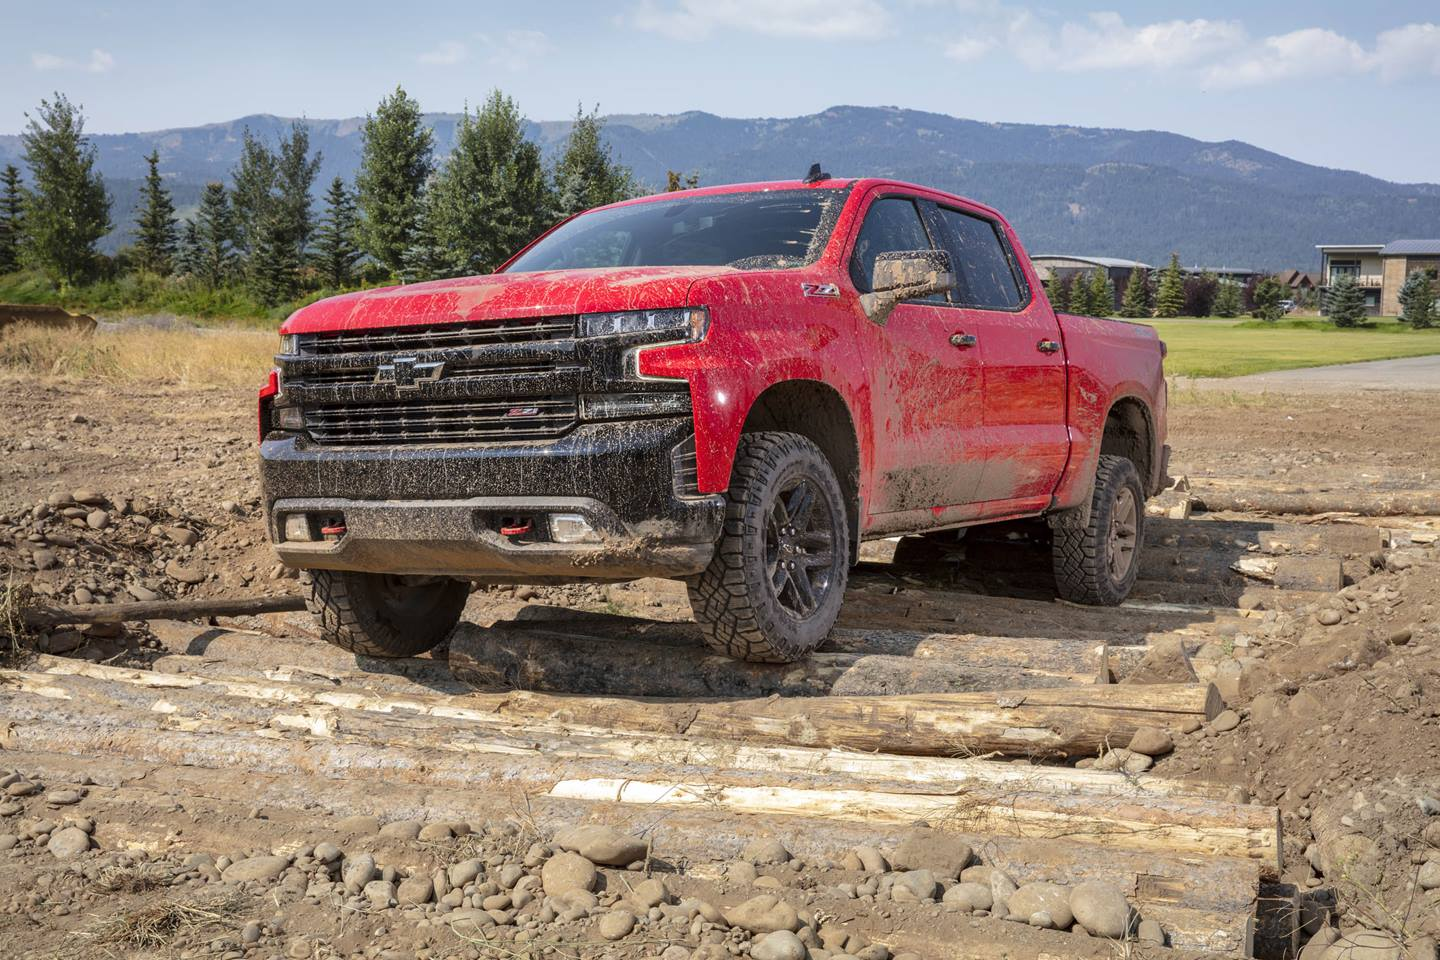 2019 Chevy Silverado Trail Boss Drivin Over Logs